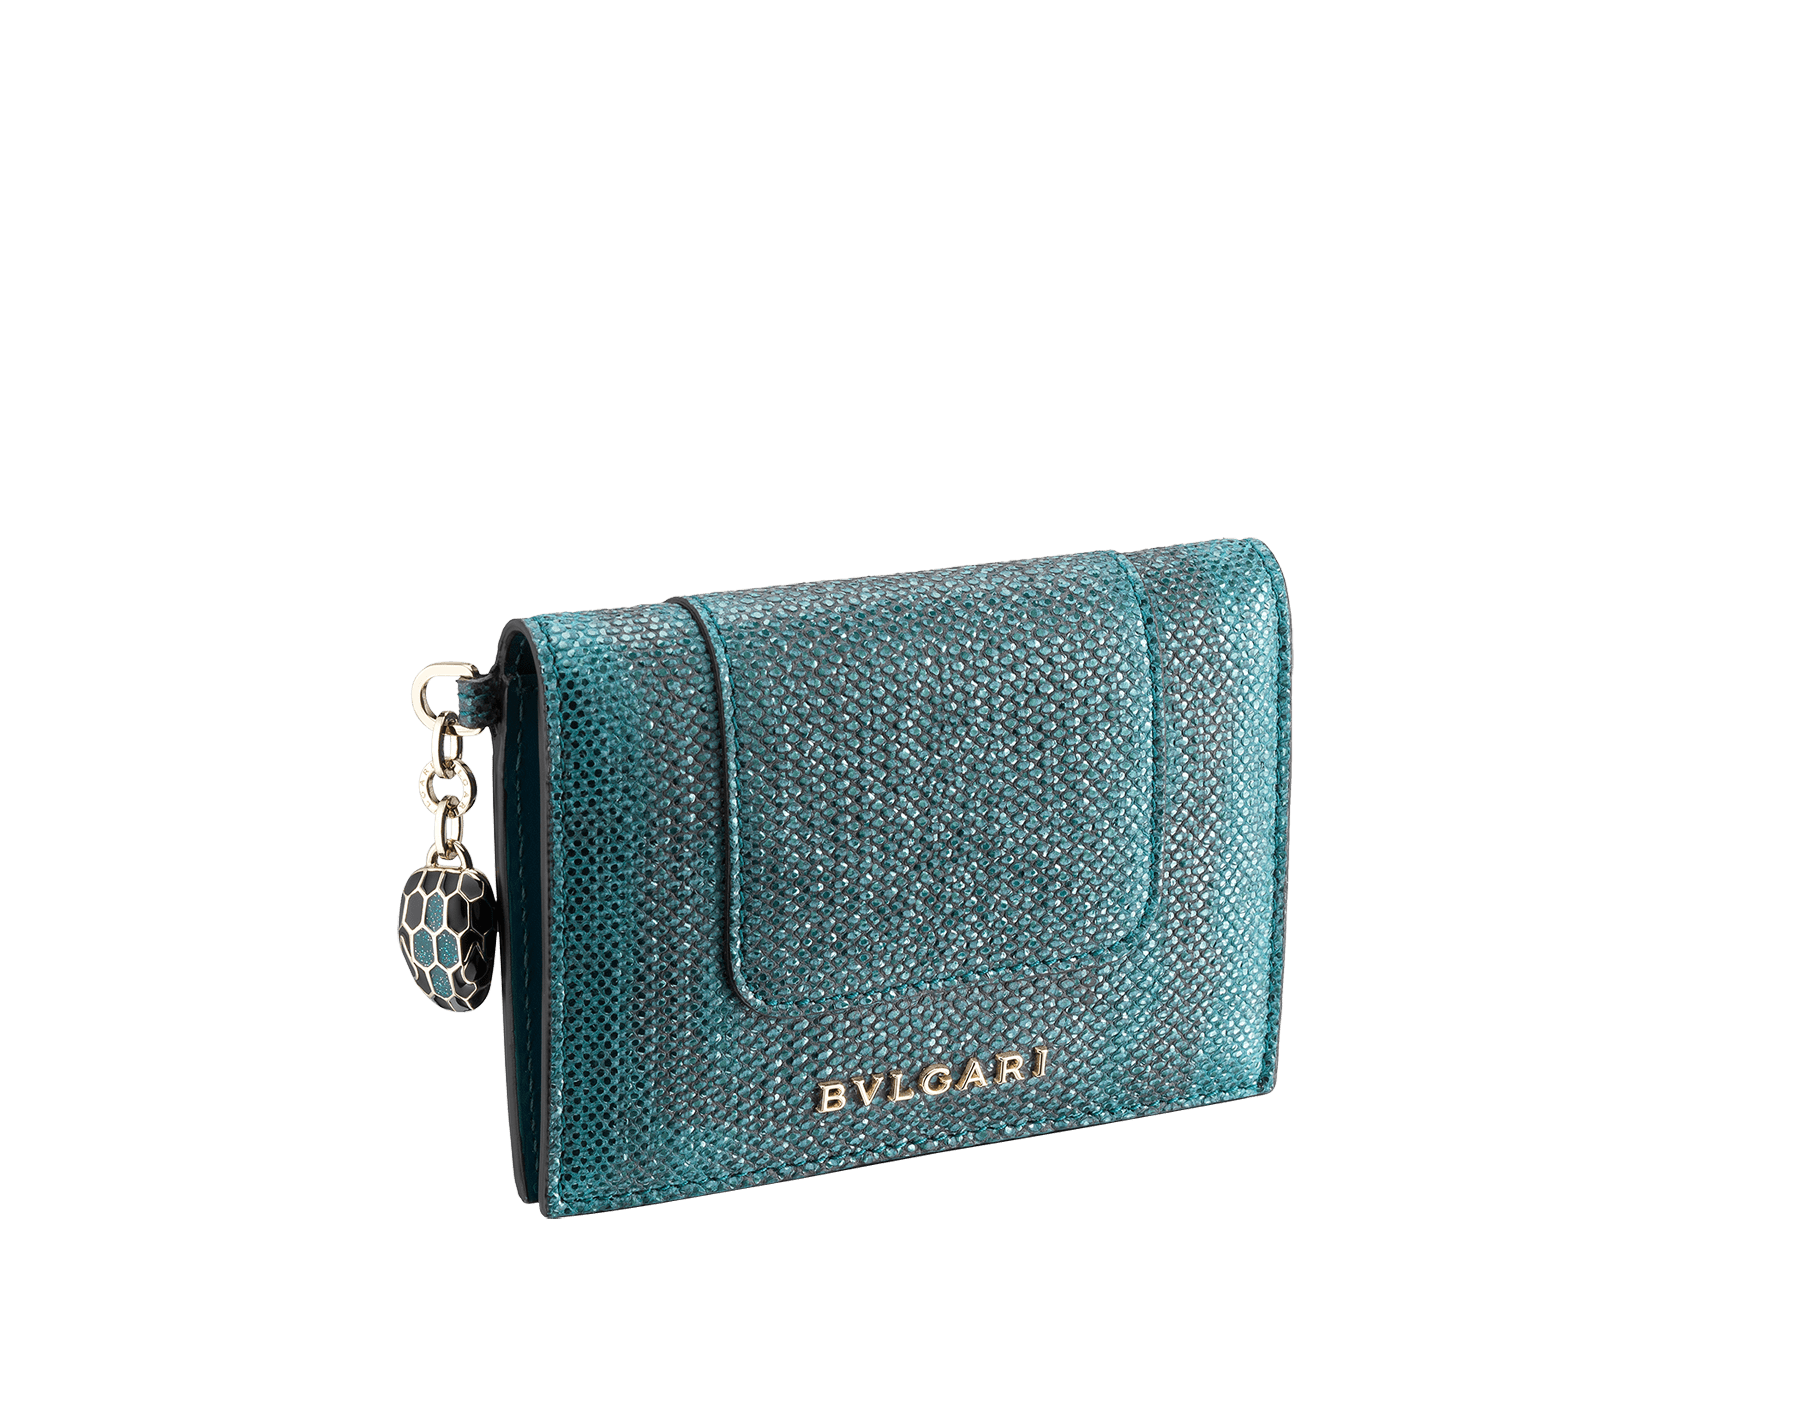 Serpenti Forever folded credit card holder in ruby red metallic karung skin. Iconic snakehead charm in black and glitter silver enamel, with black enamel eyes SEA-CC-HOLDER-FOLD-MKb image 1